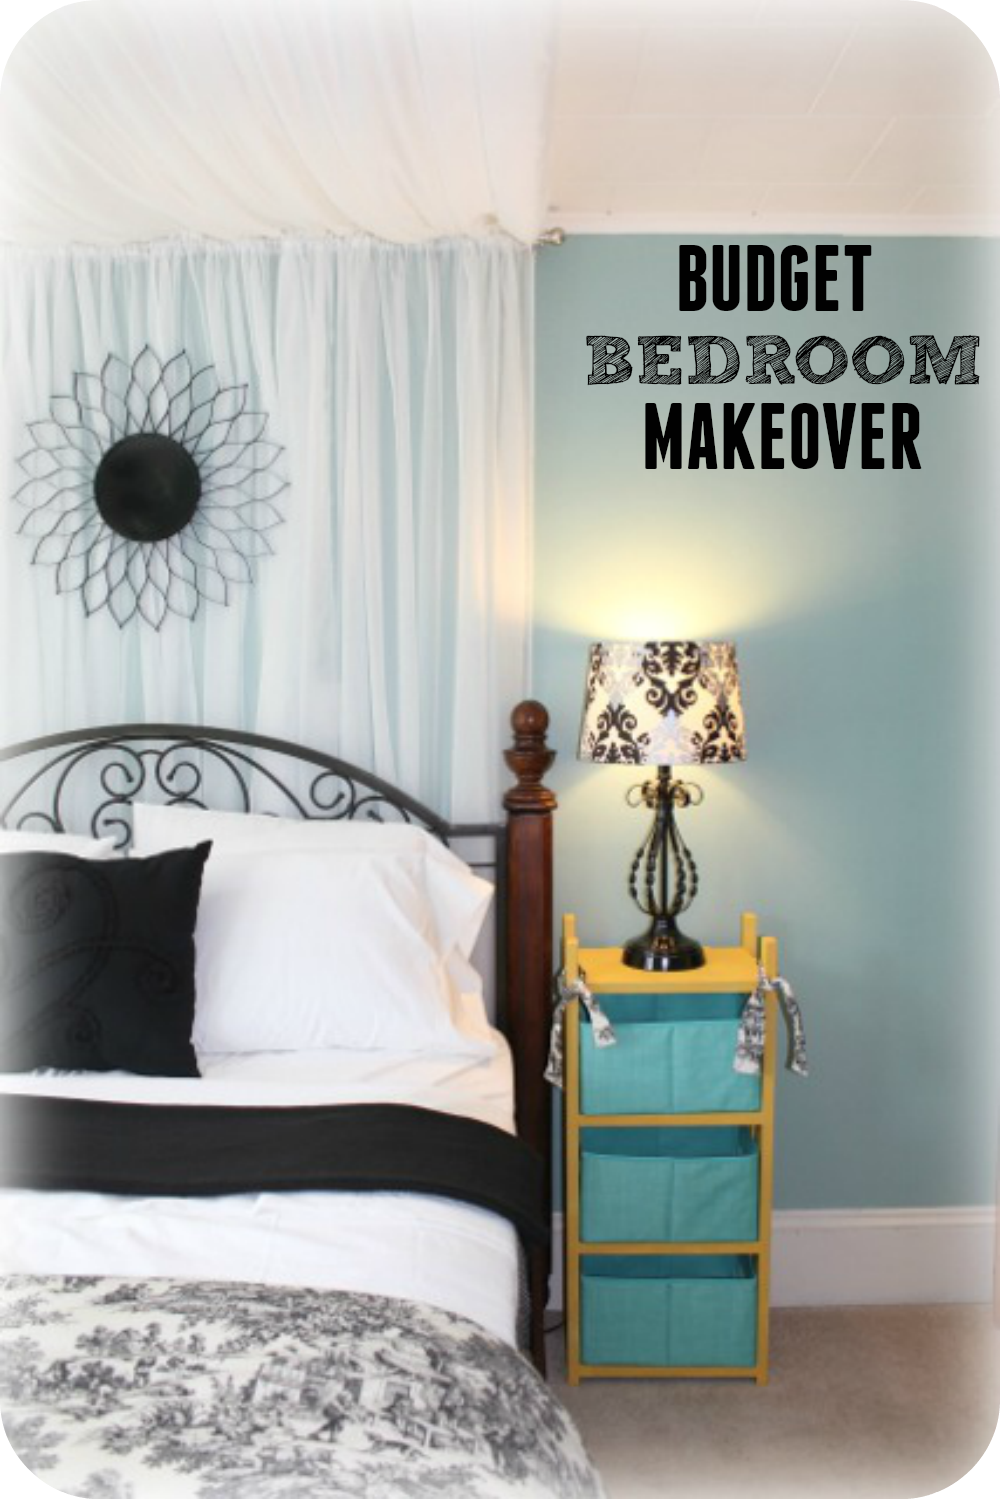 bedroom makeover tips budget bedroom ideas 10561